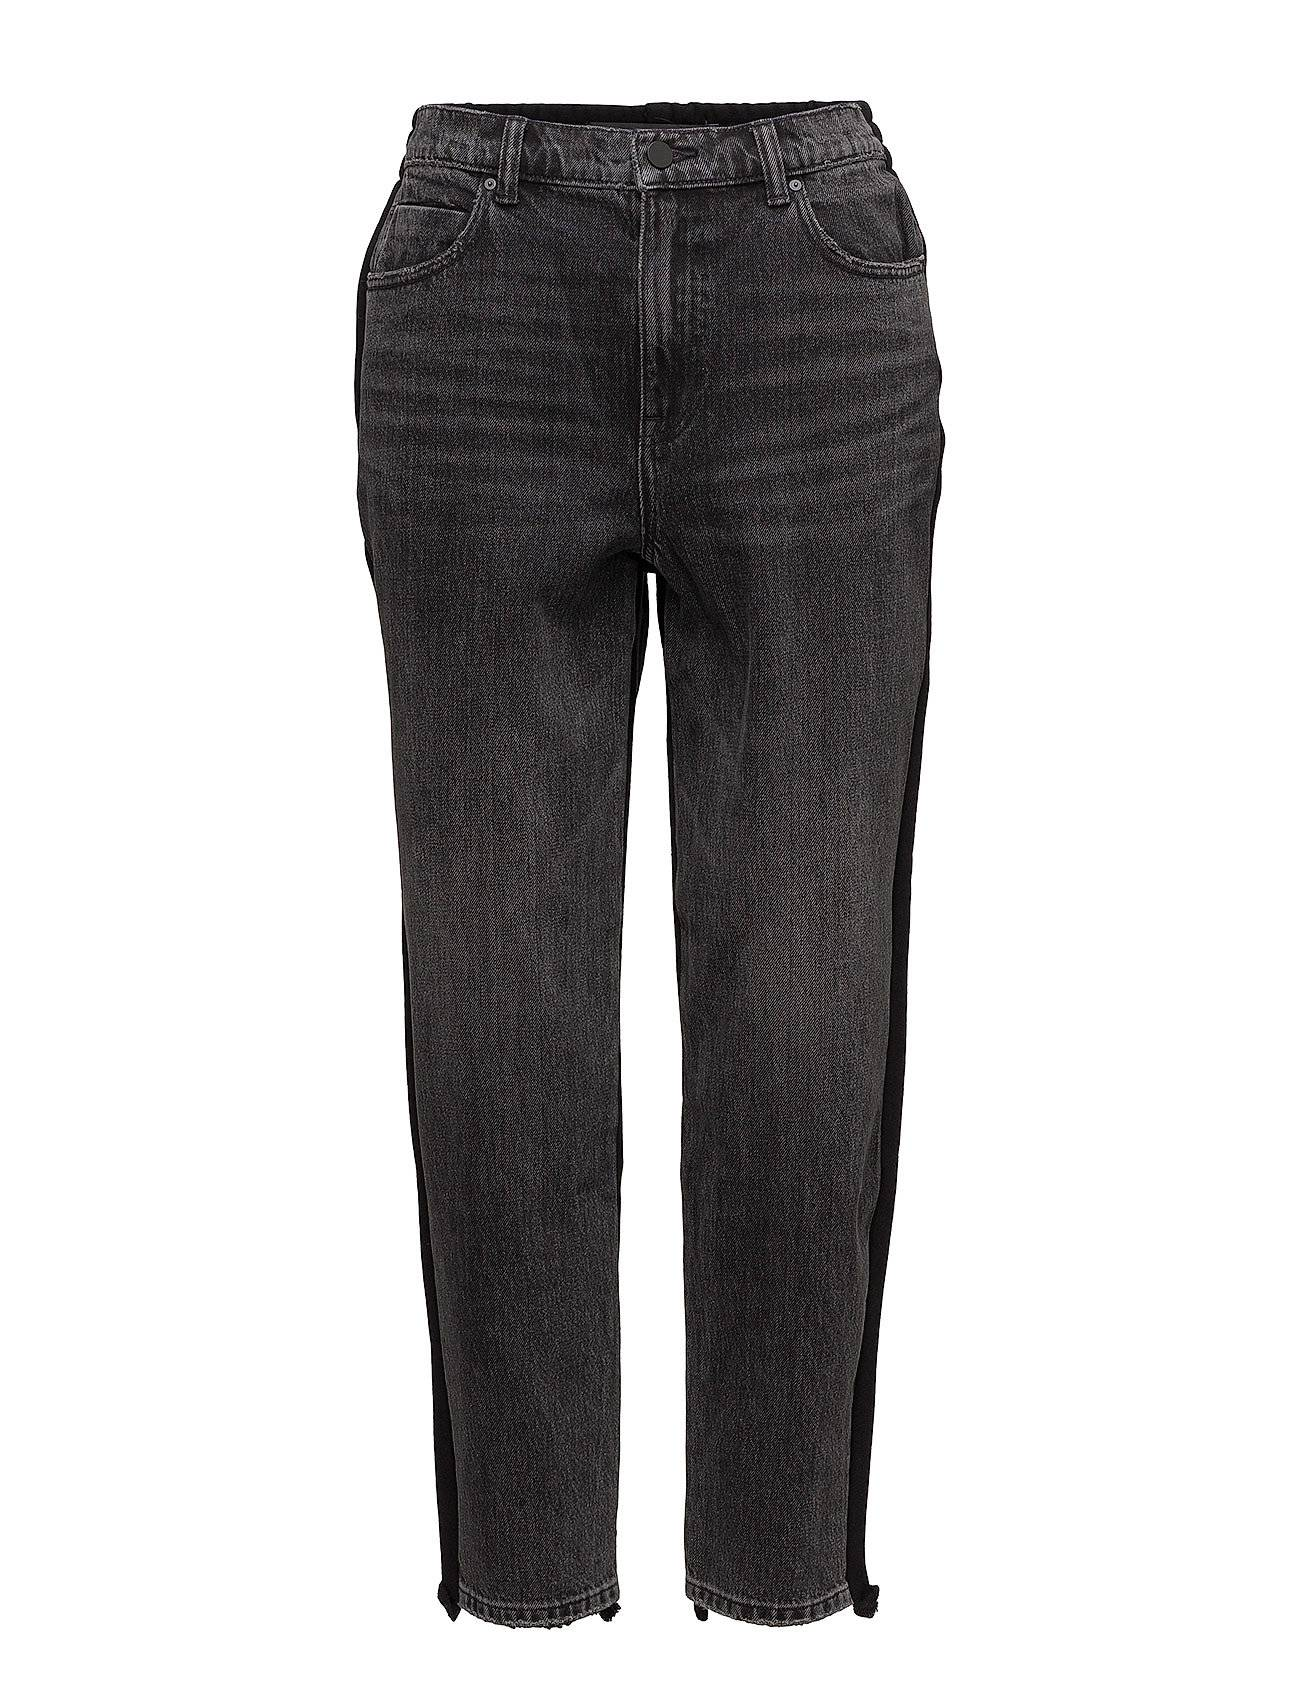 T by Alexander Wang Ride Clash Grey Aged/Black Terry